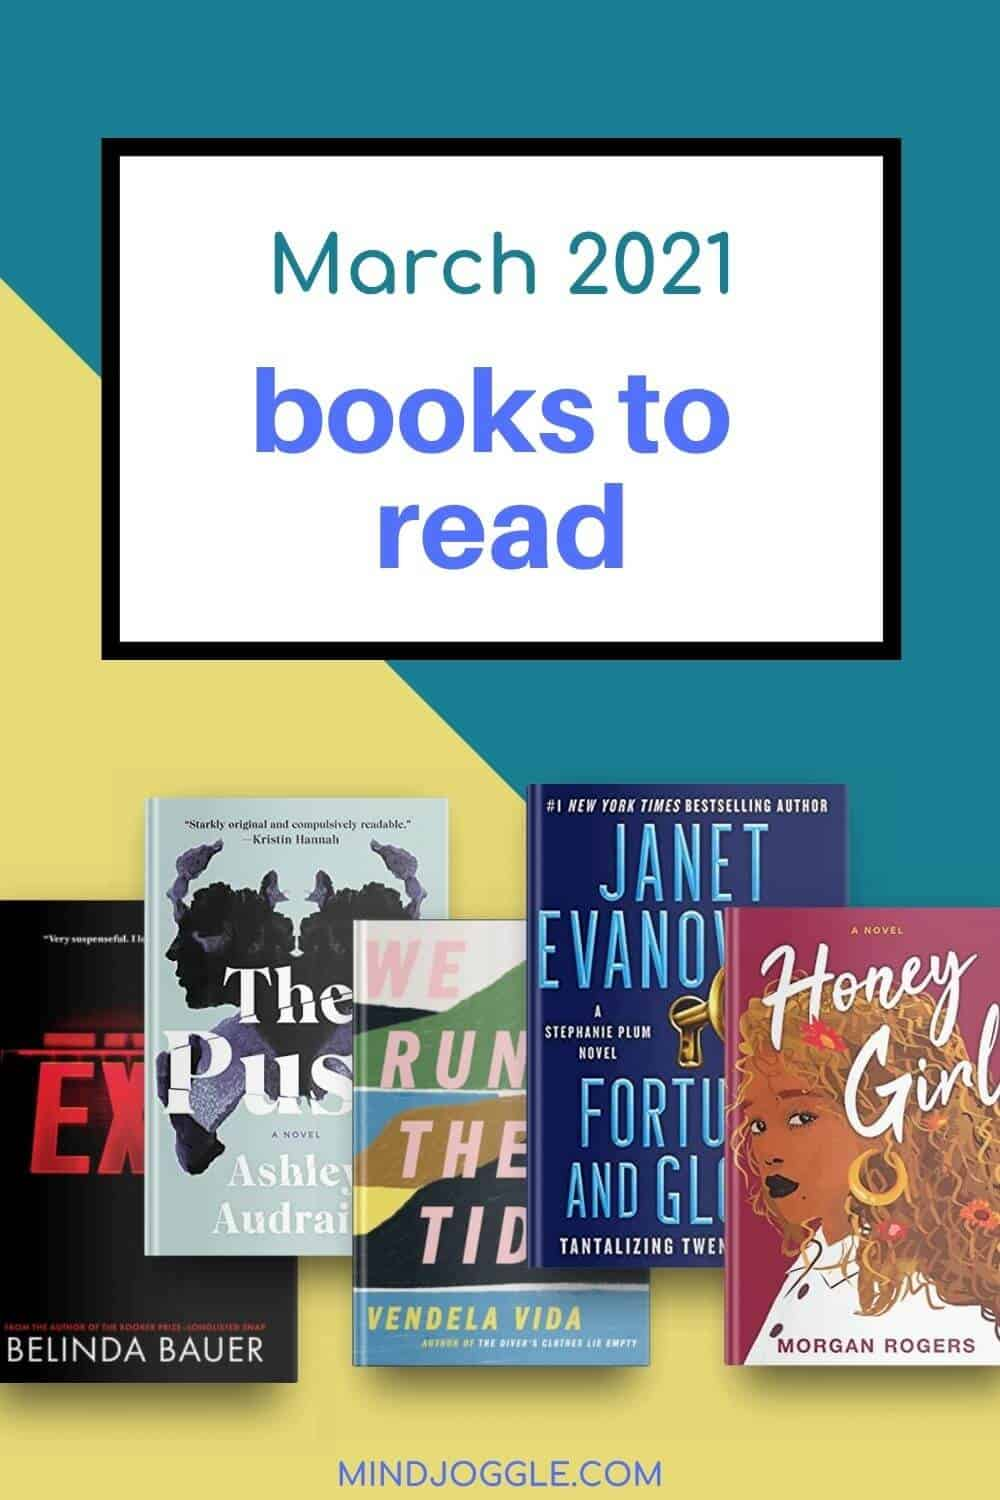 Books to read in March 2021, including Exit, The Push, We Run the Tides, Fortune and Glory, and Honey Girl